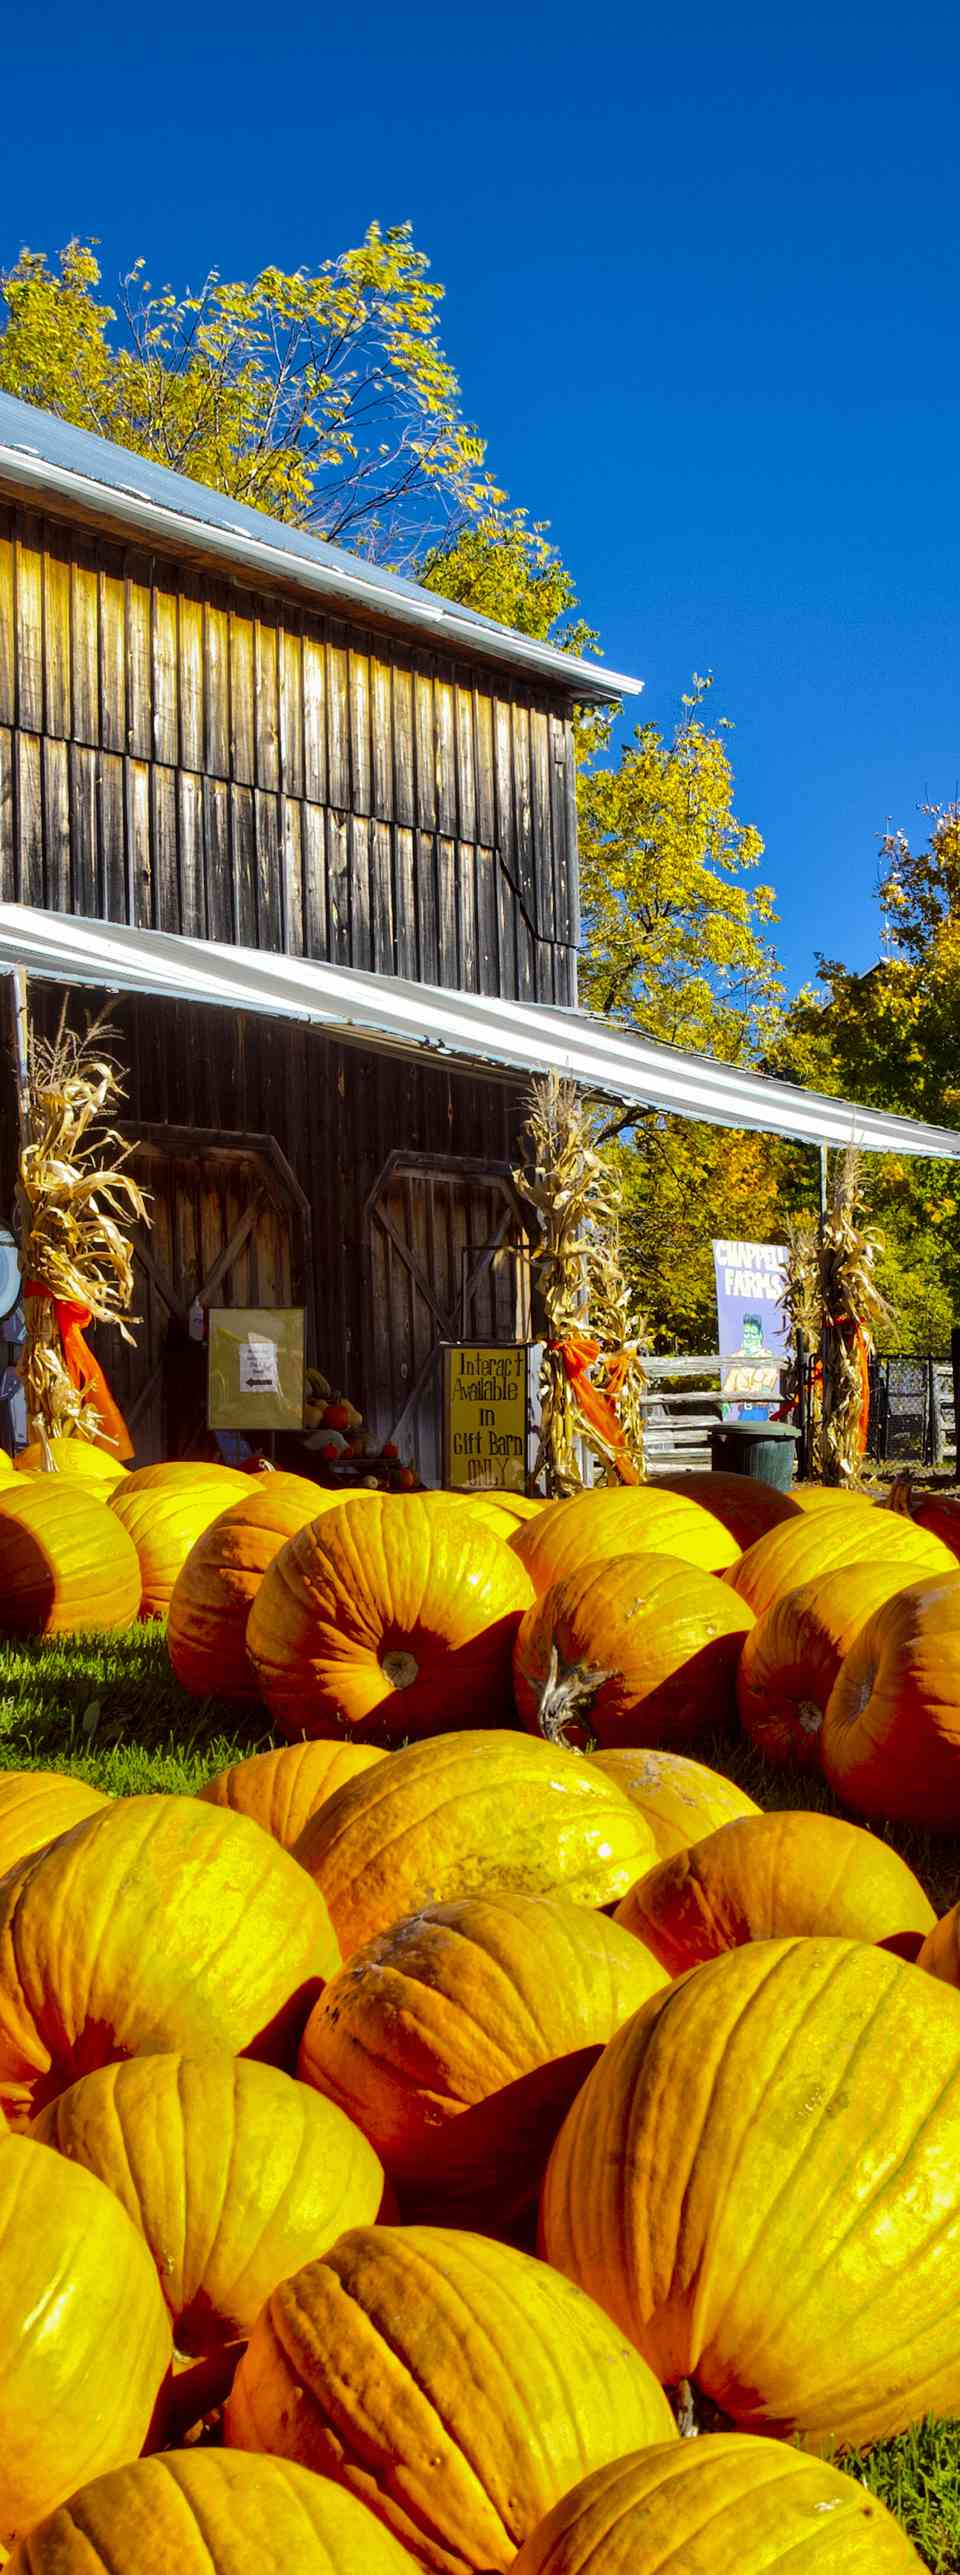 Pumpkins for sale at a farm near Barrie in Ontario, Canada